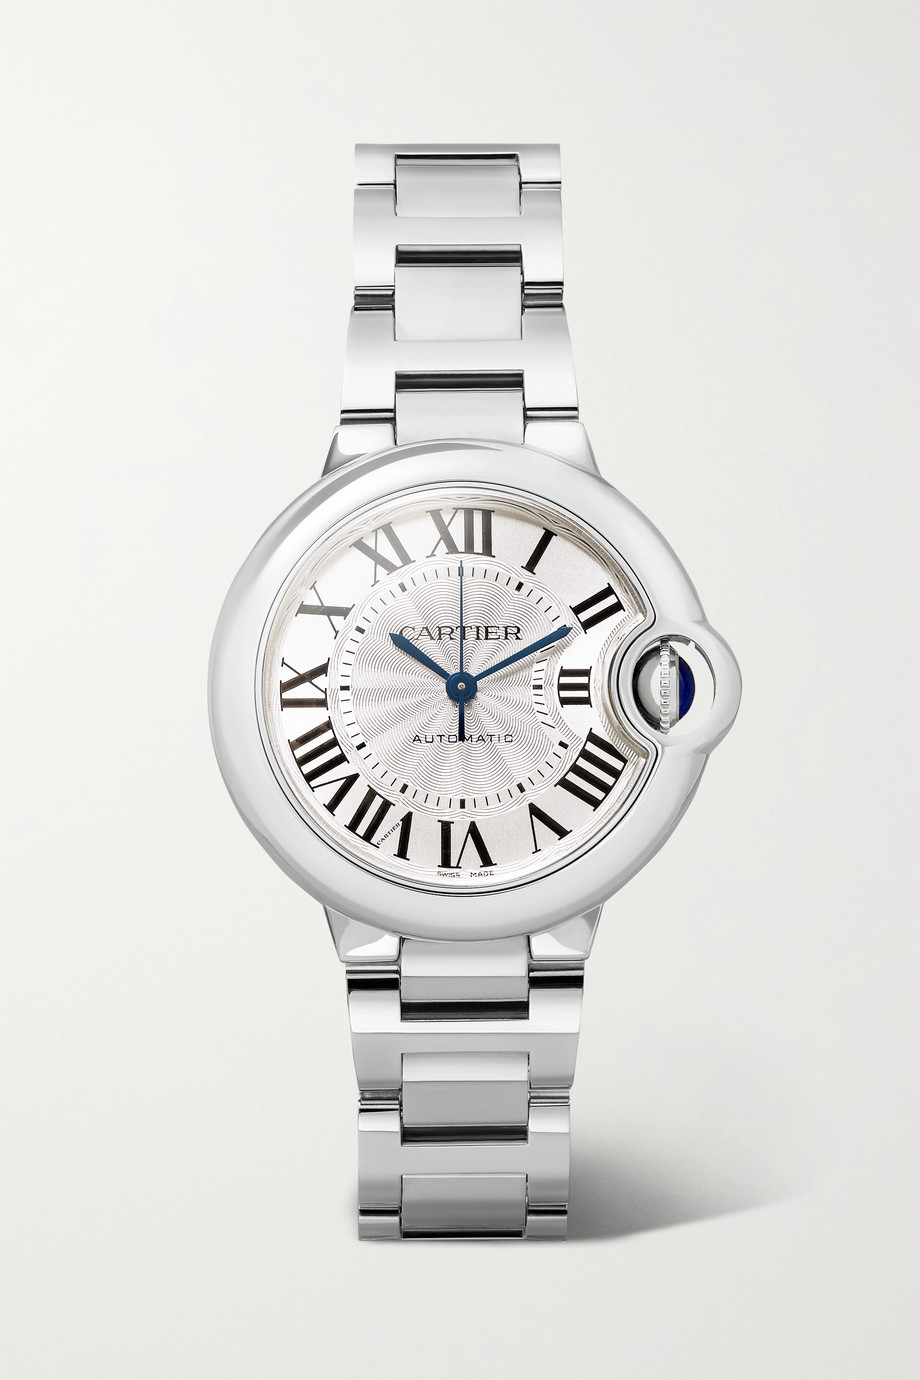 Cartier Ballon Bleu de Cartier Automatic 33mm stainless steel watch